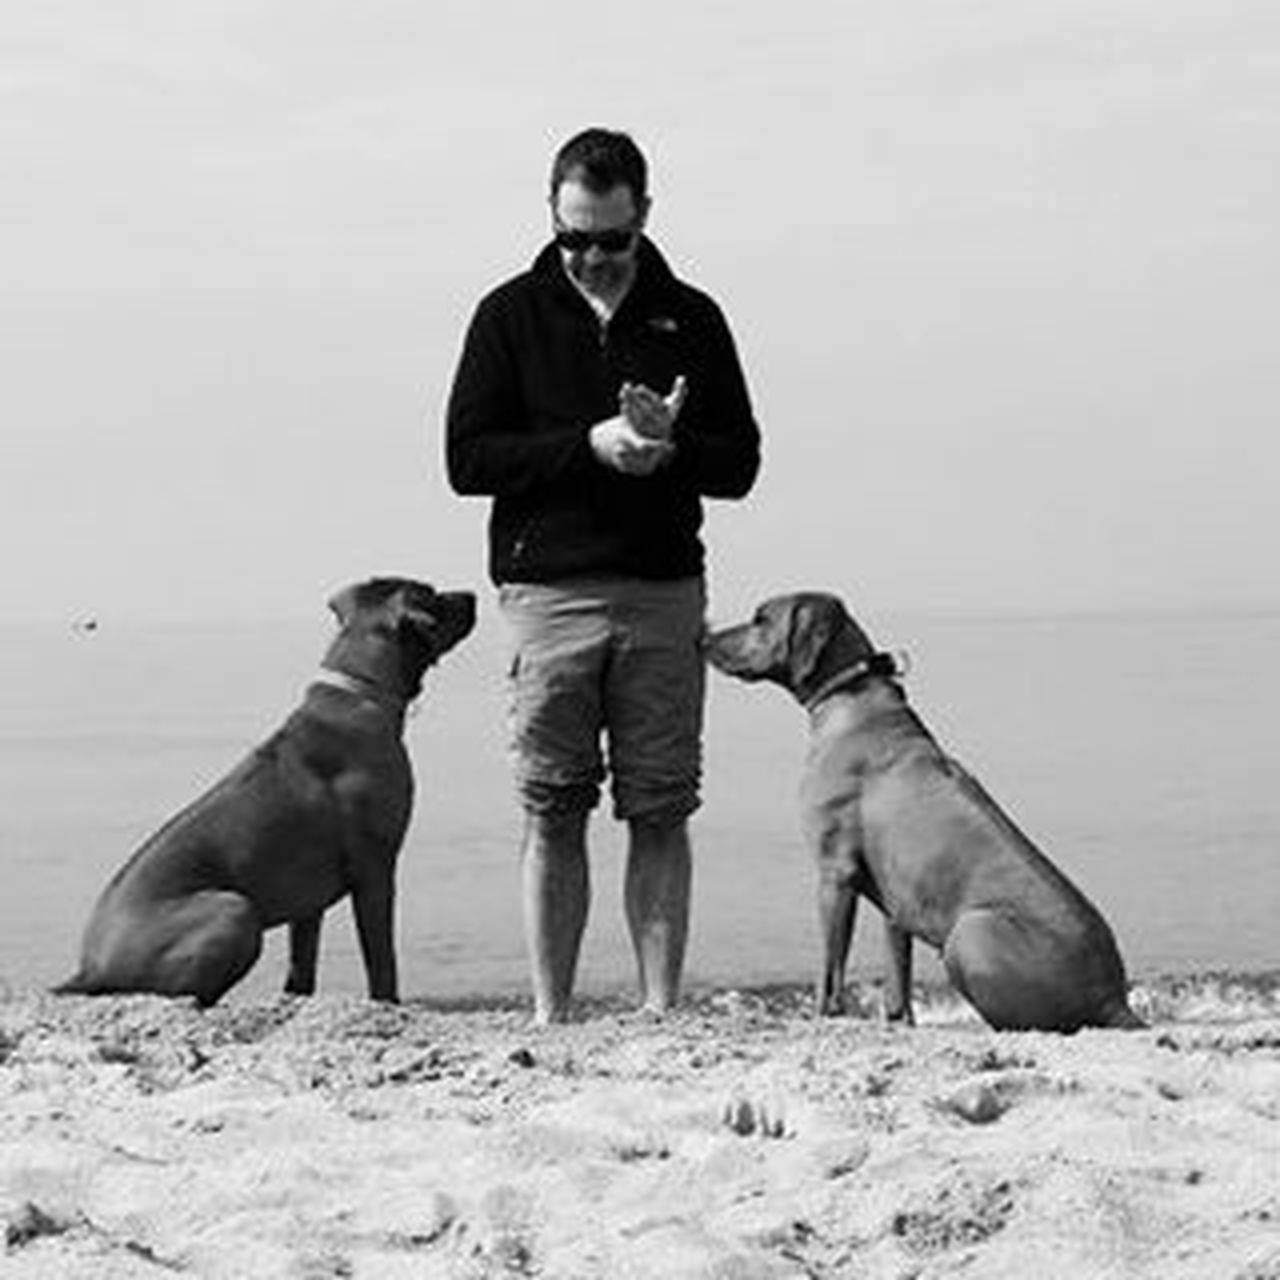 dog, one man only, only men, pets, one person, domestic animals, one animal, adult, full length, adults only, men, mammal, people, friendship, outdoors, sand, day, nature